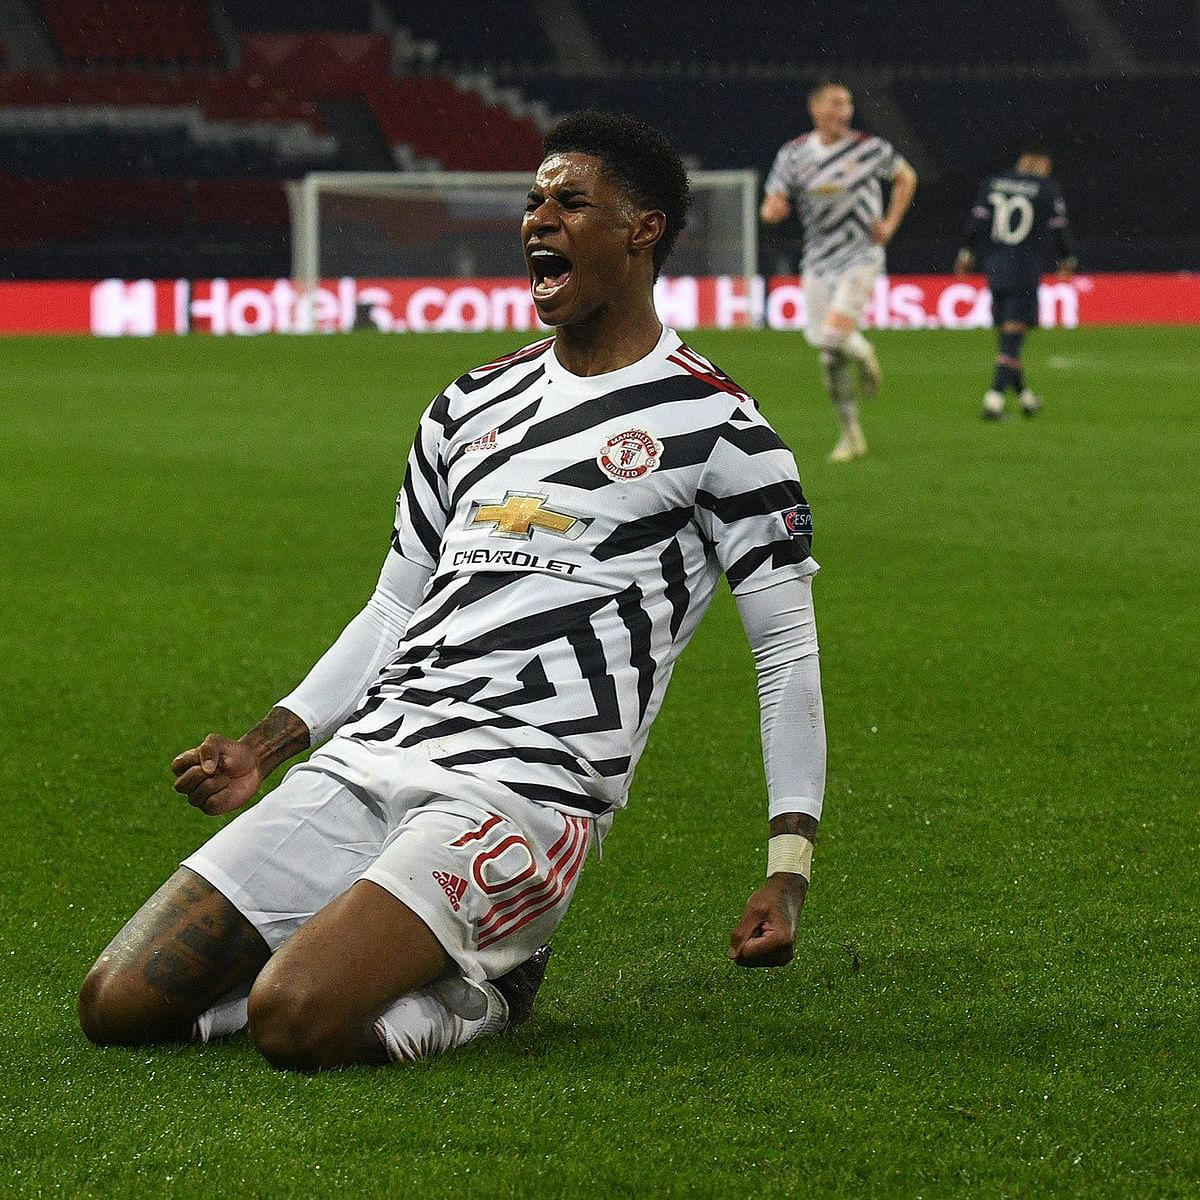 Champions League: Here's why Man United's Marcus Rashford did not take penalty against RB Leipzig